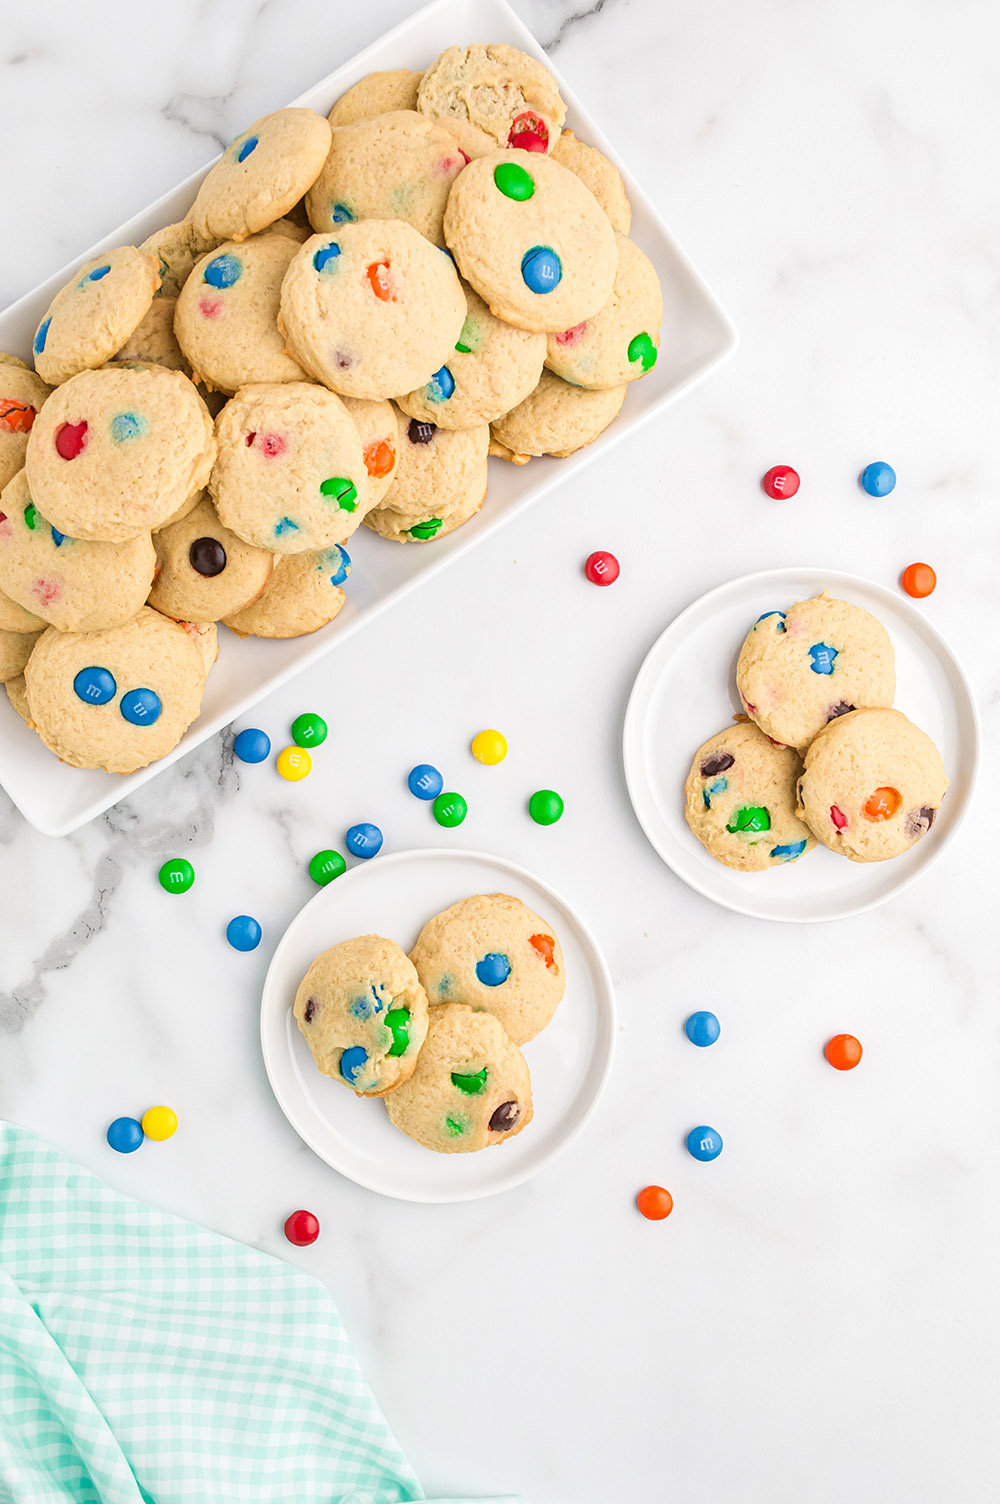 Overhead image of cookies on plates and on a tray with M&M's sprinkled on the table.